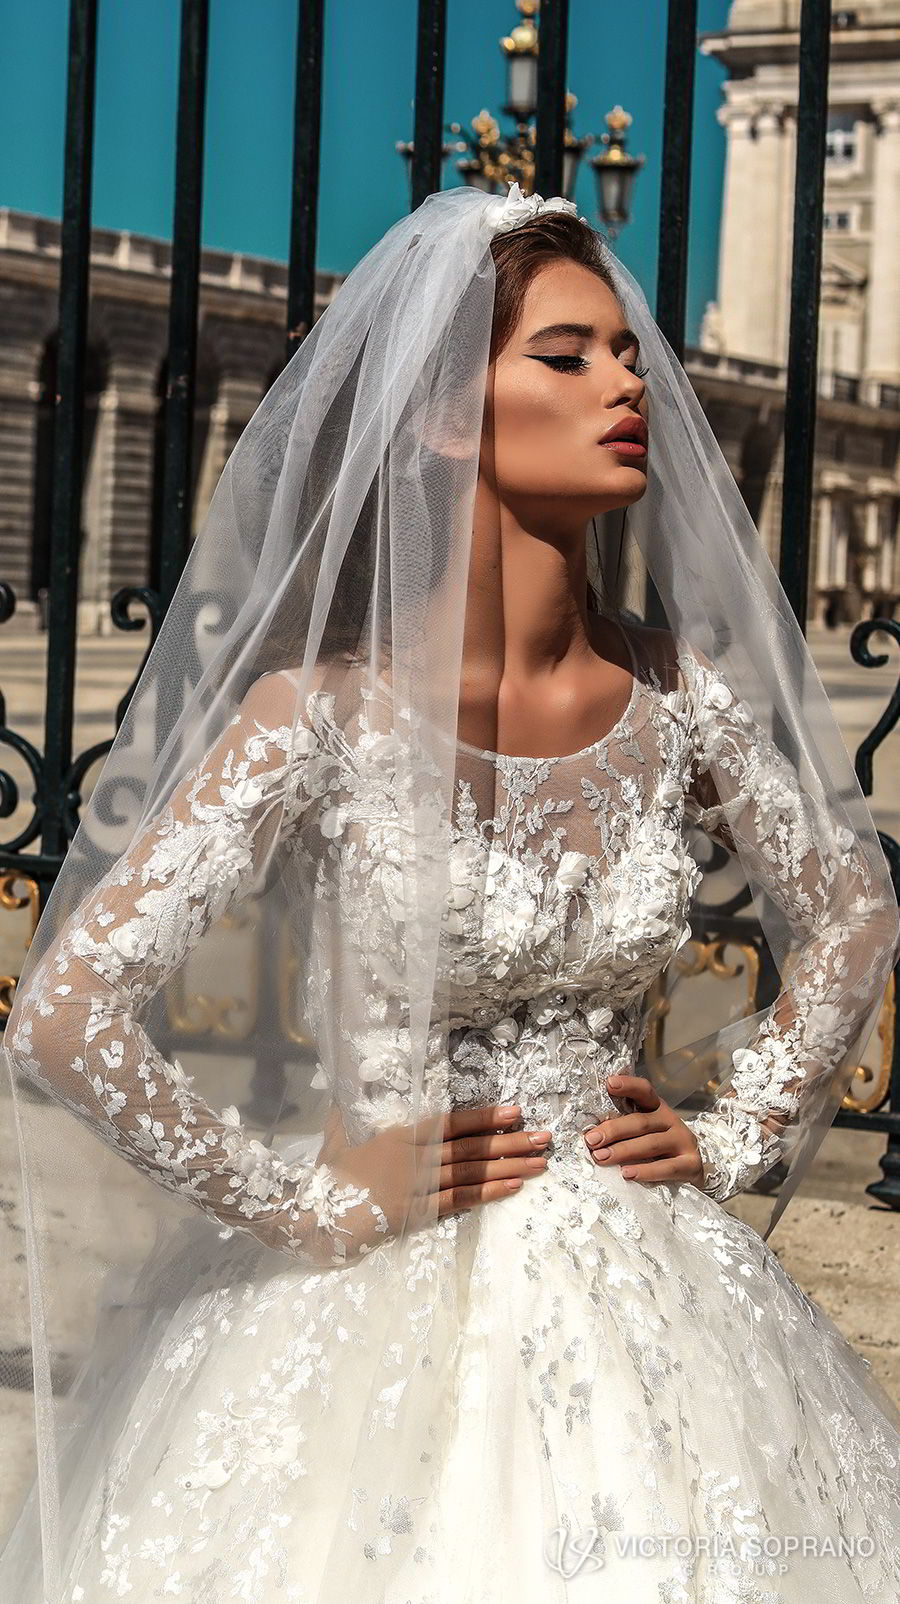 victoria soprano 2018 bridal long sleeves illusion jewel sweetheart neckline heavily embellished bodice princess ball gown a line wedding dress sheer lace back chapel train (felicity) zv